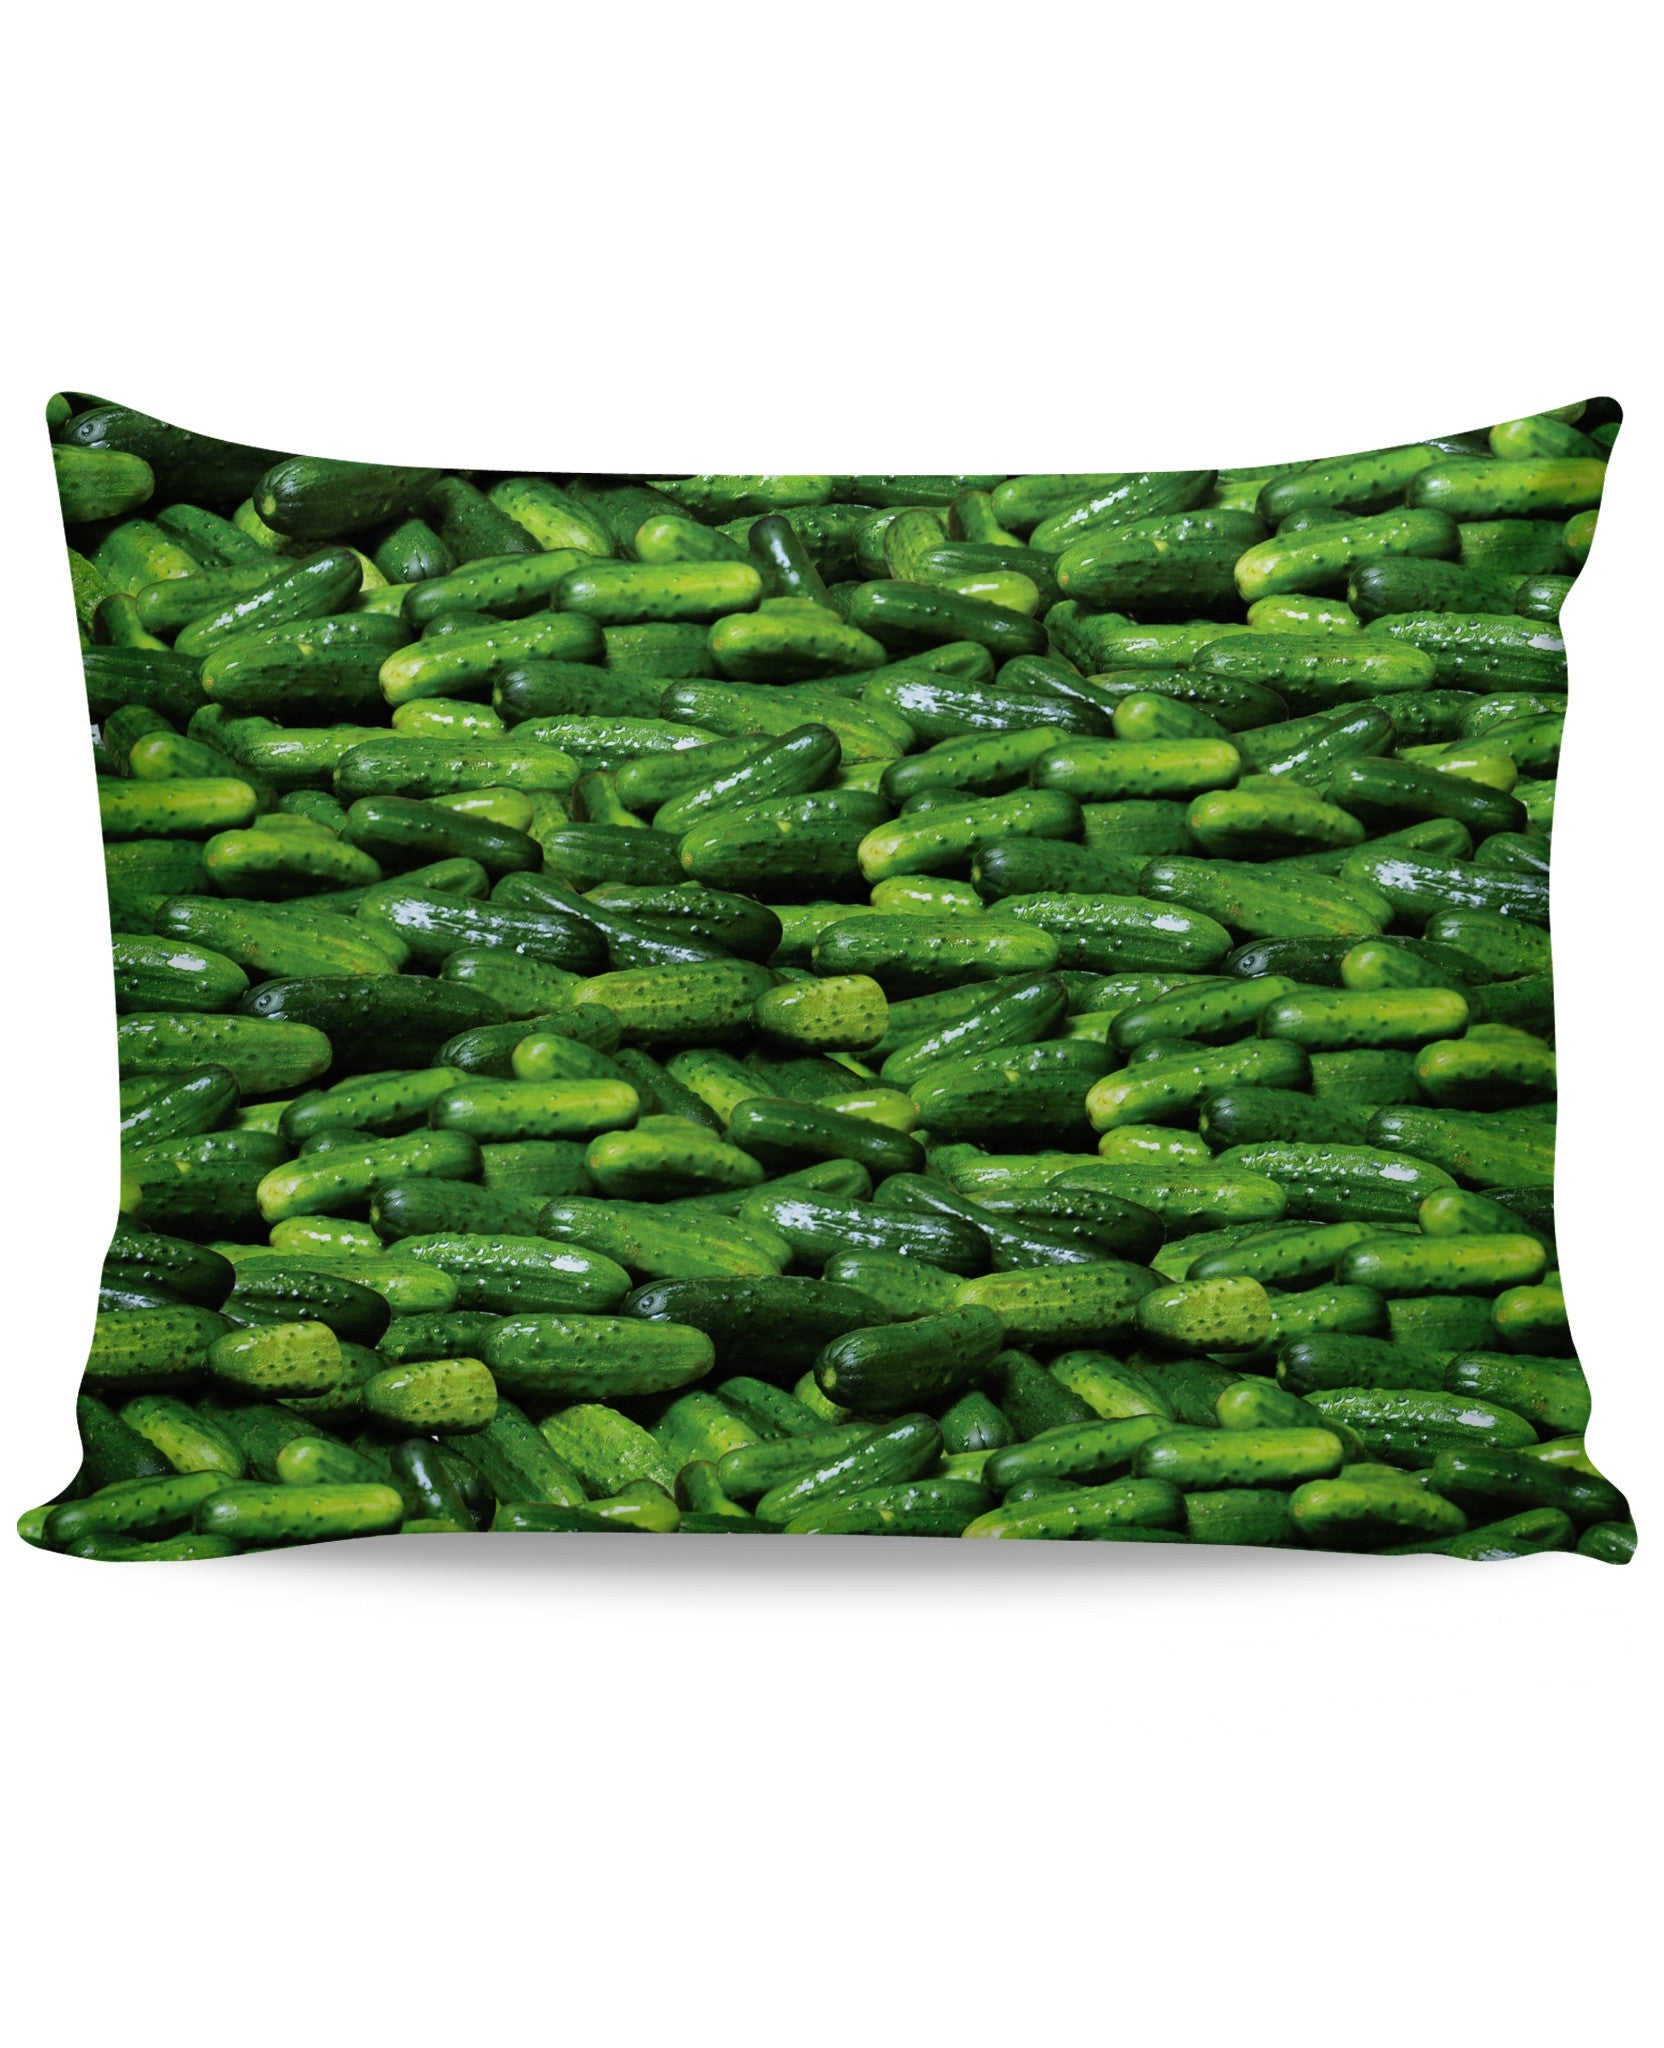 Pickles Pillow Case